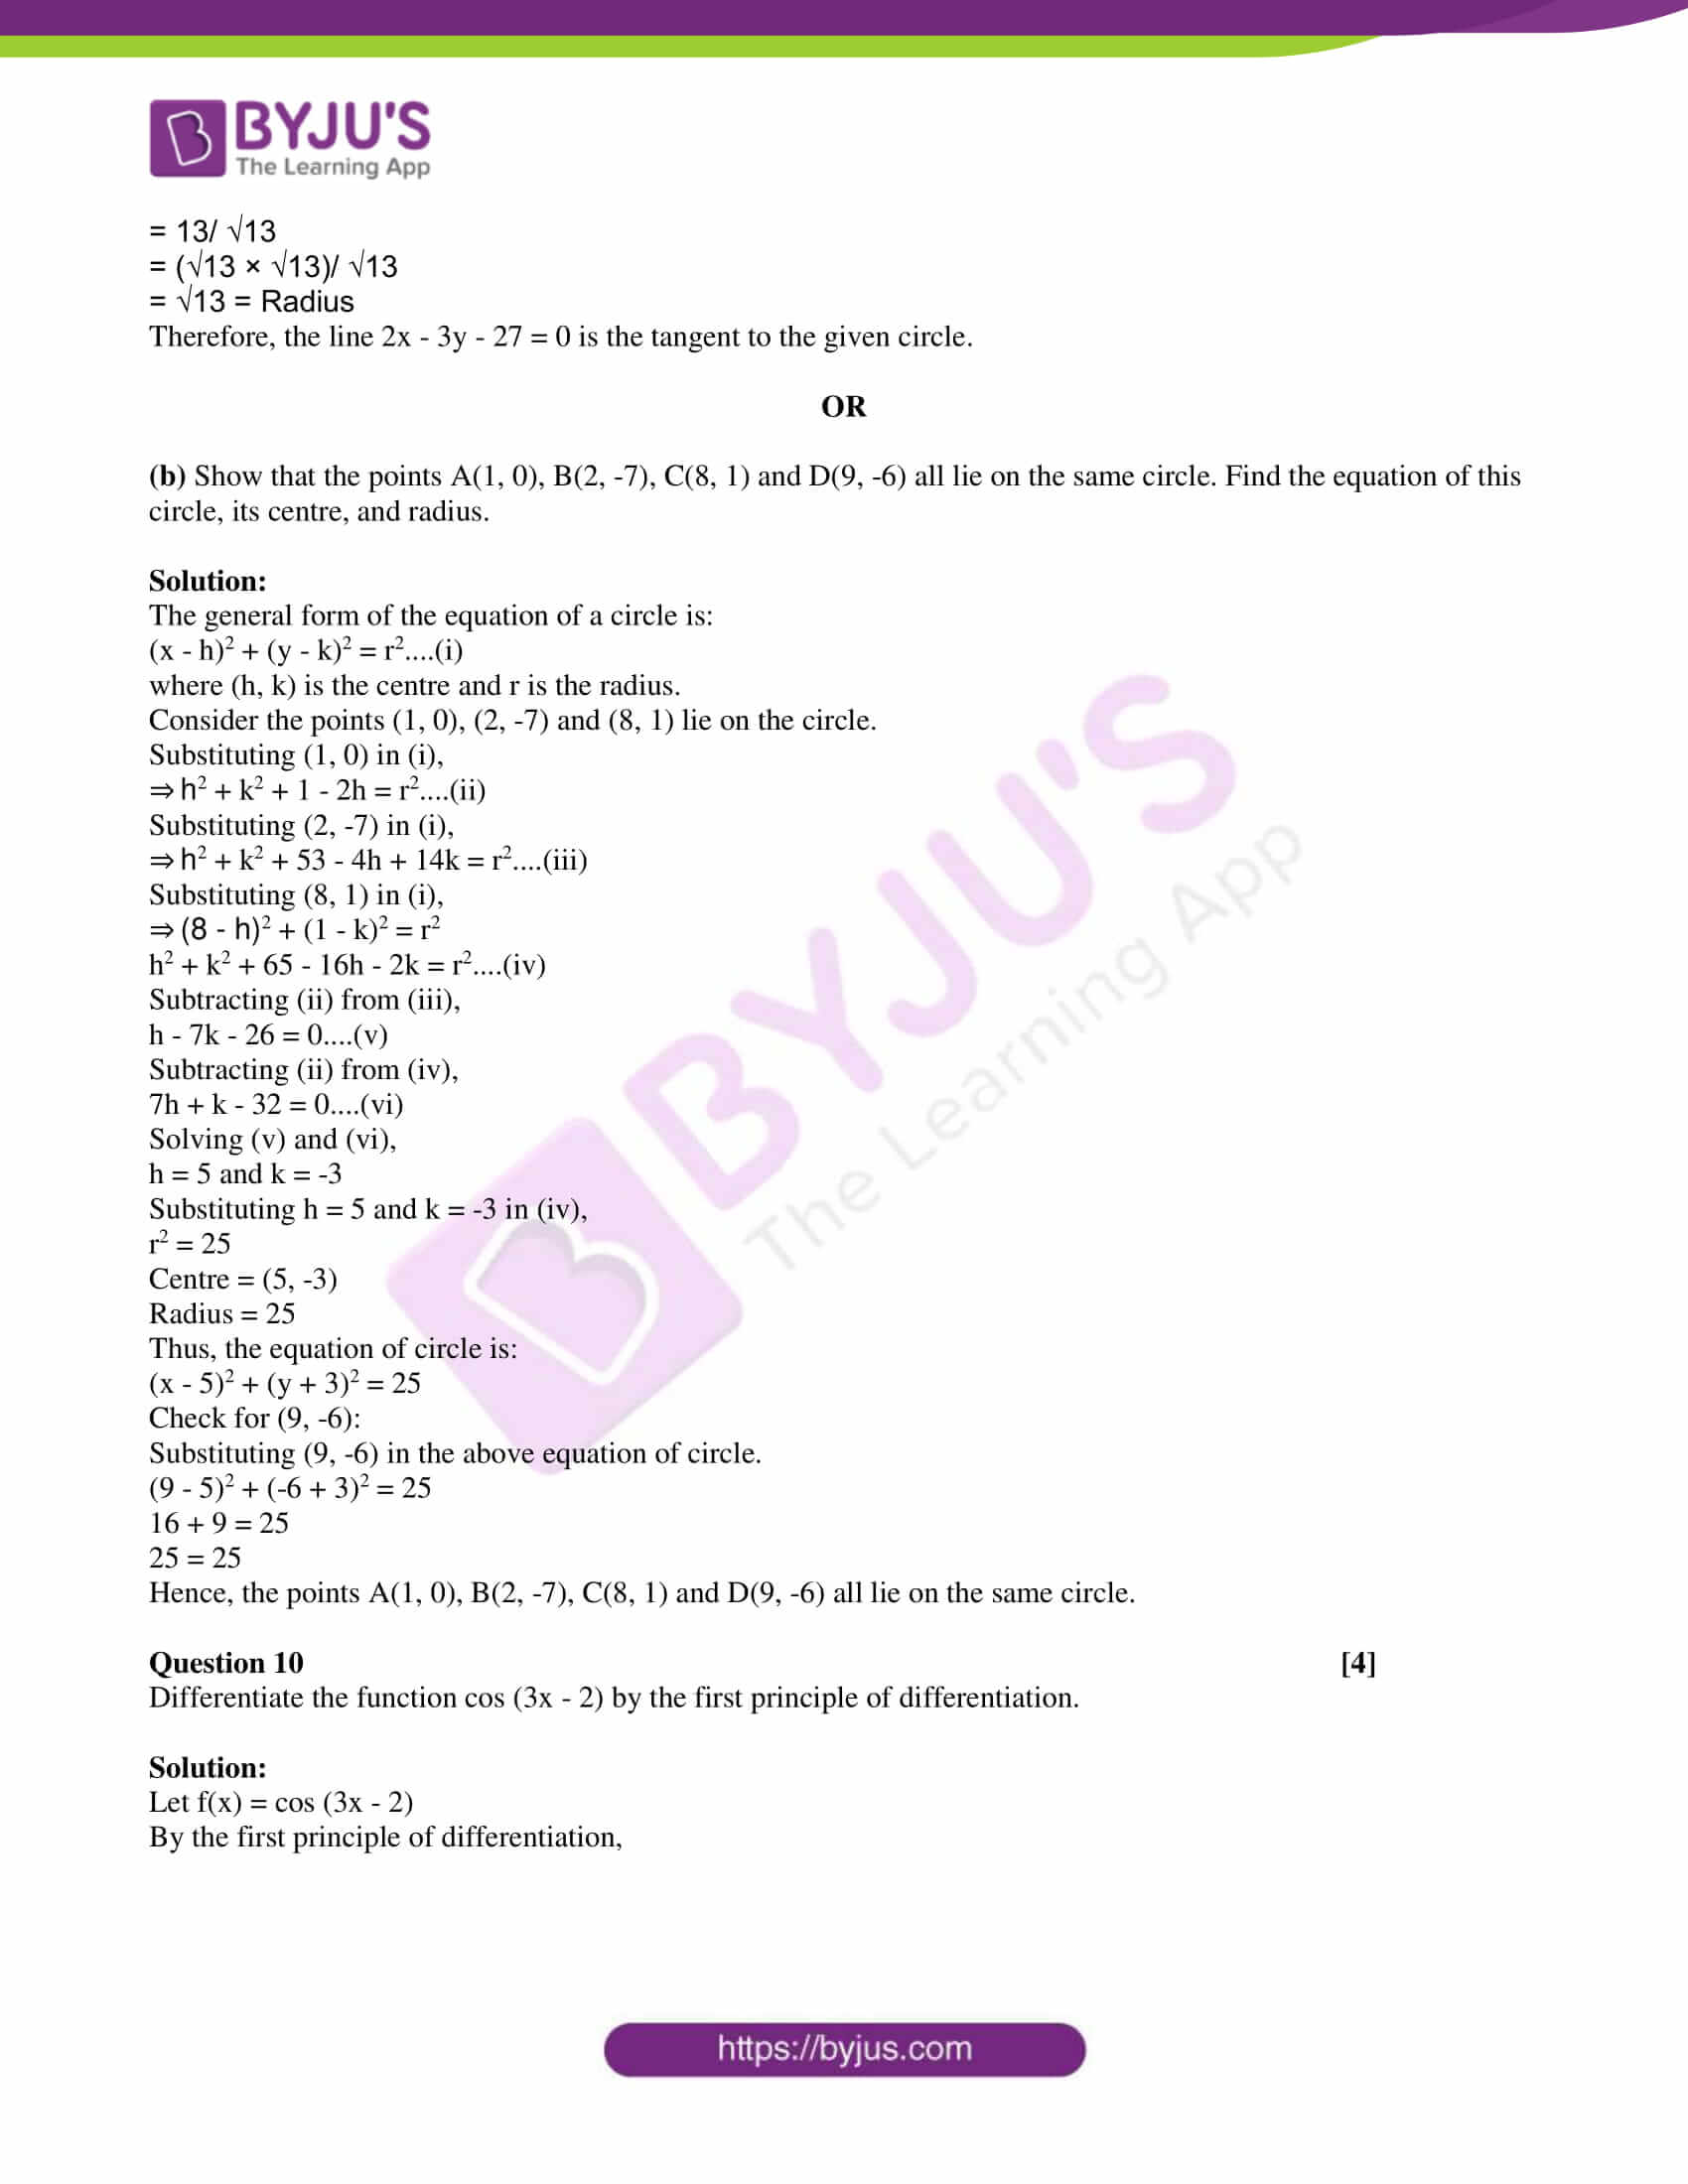 isc class 11 maths mock question paper with solution 2 10